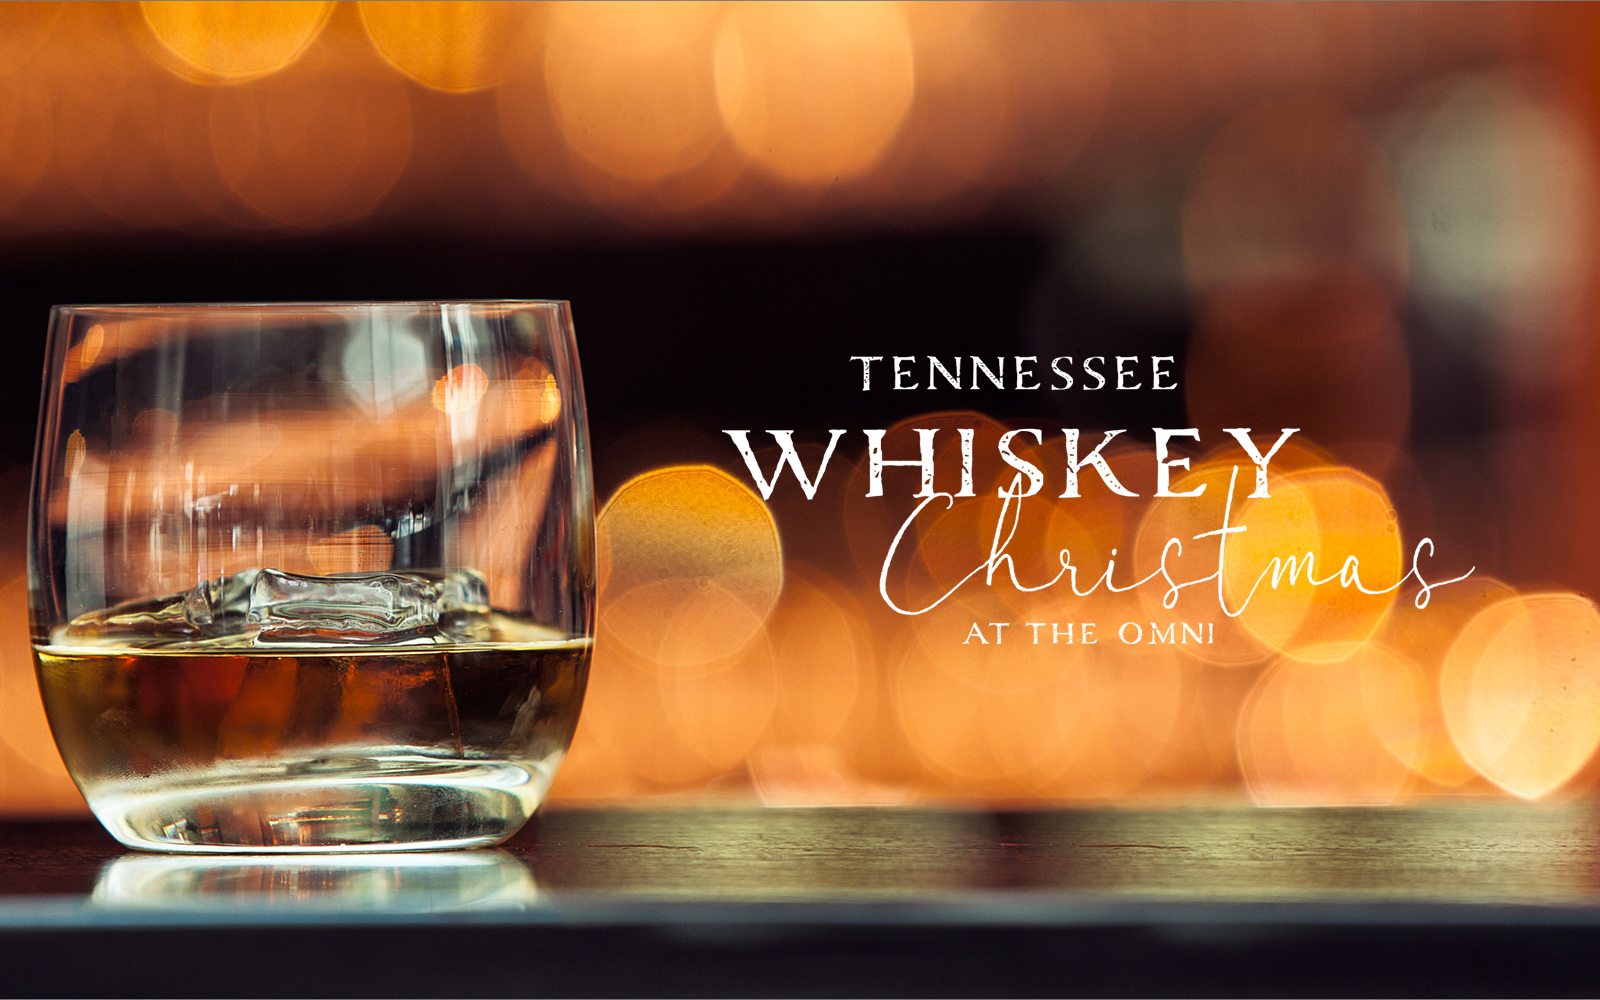 Tennessee Whiskey Christmas image